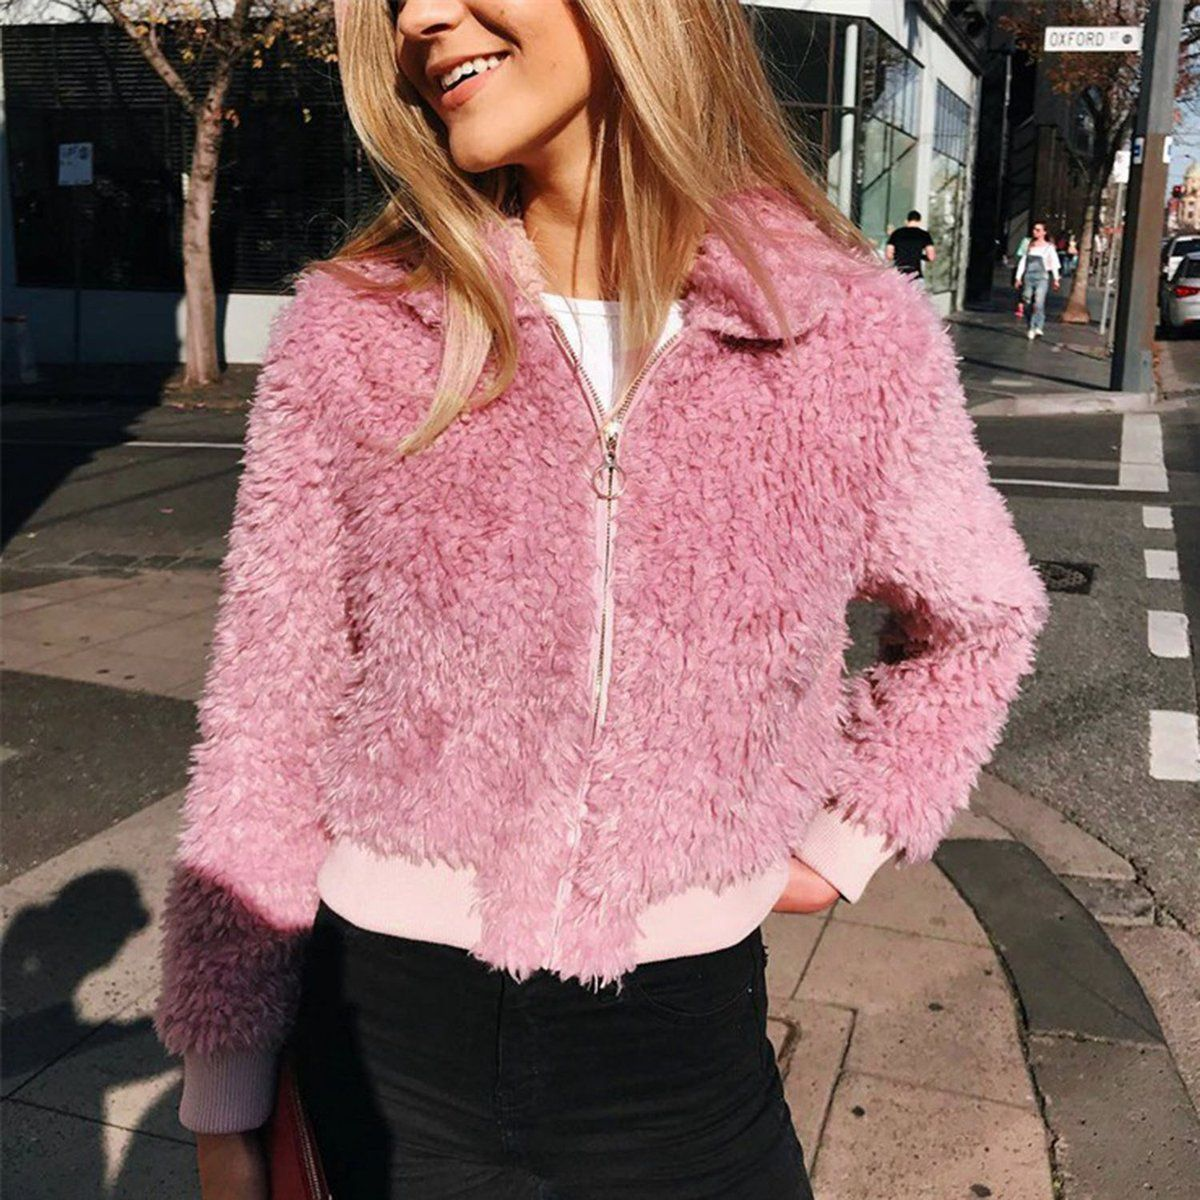 Lifestyler Fashion Girls Winter Warm Thick Outwear Faux Fur O-Neck Solid Coat Casual Cute Jacket Clothes